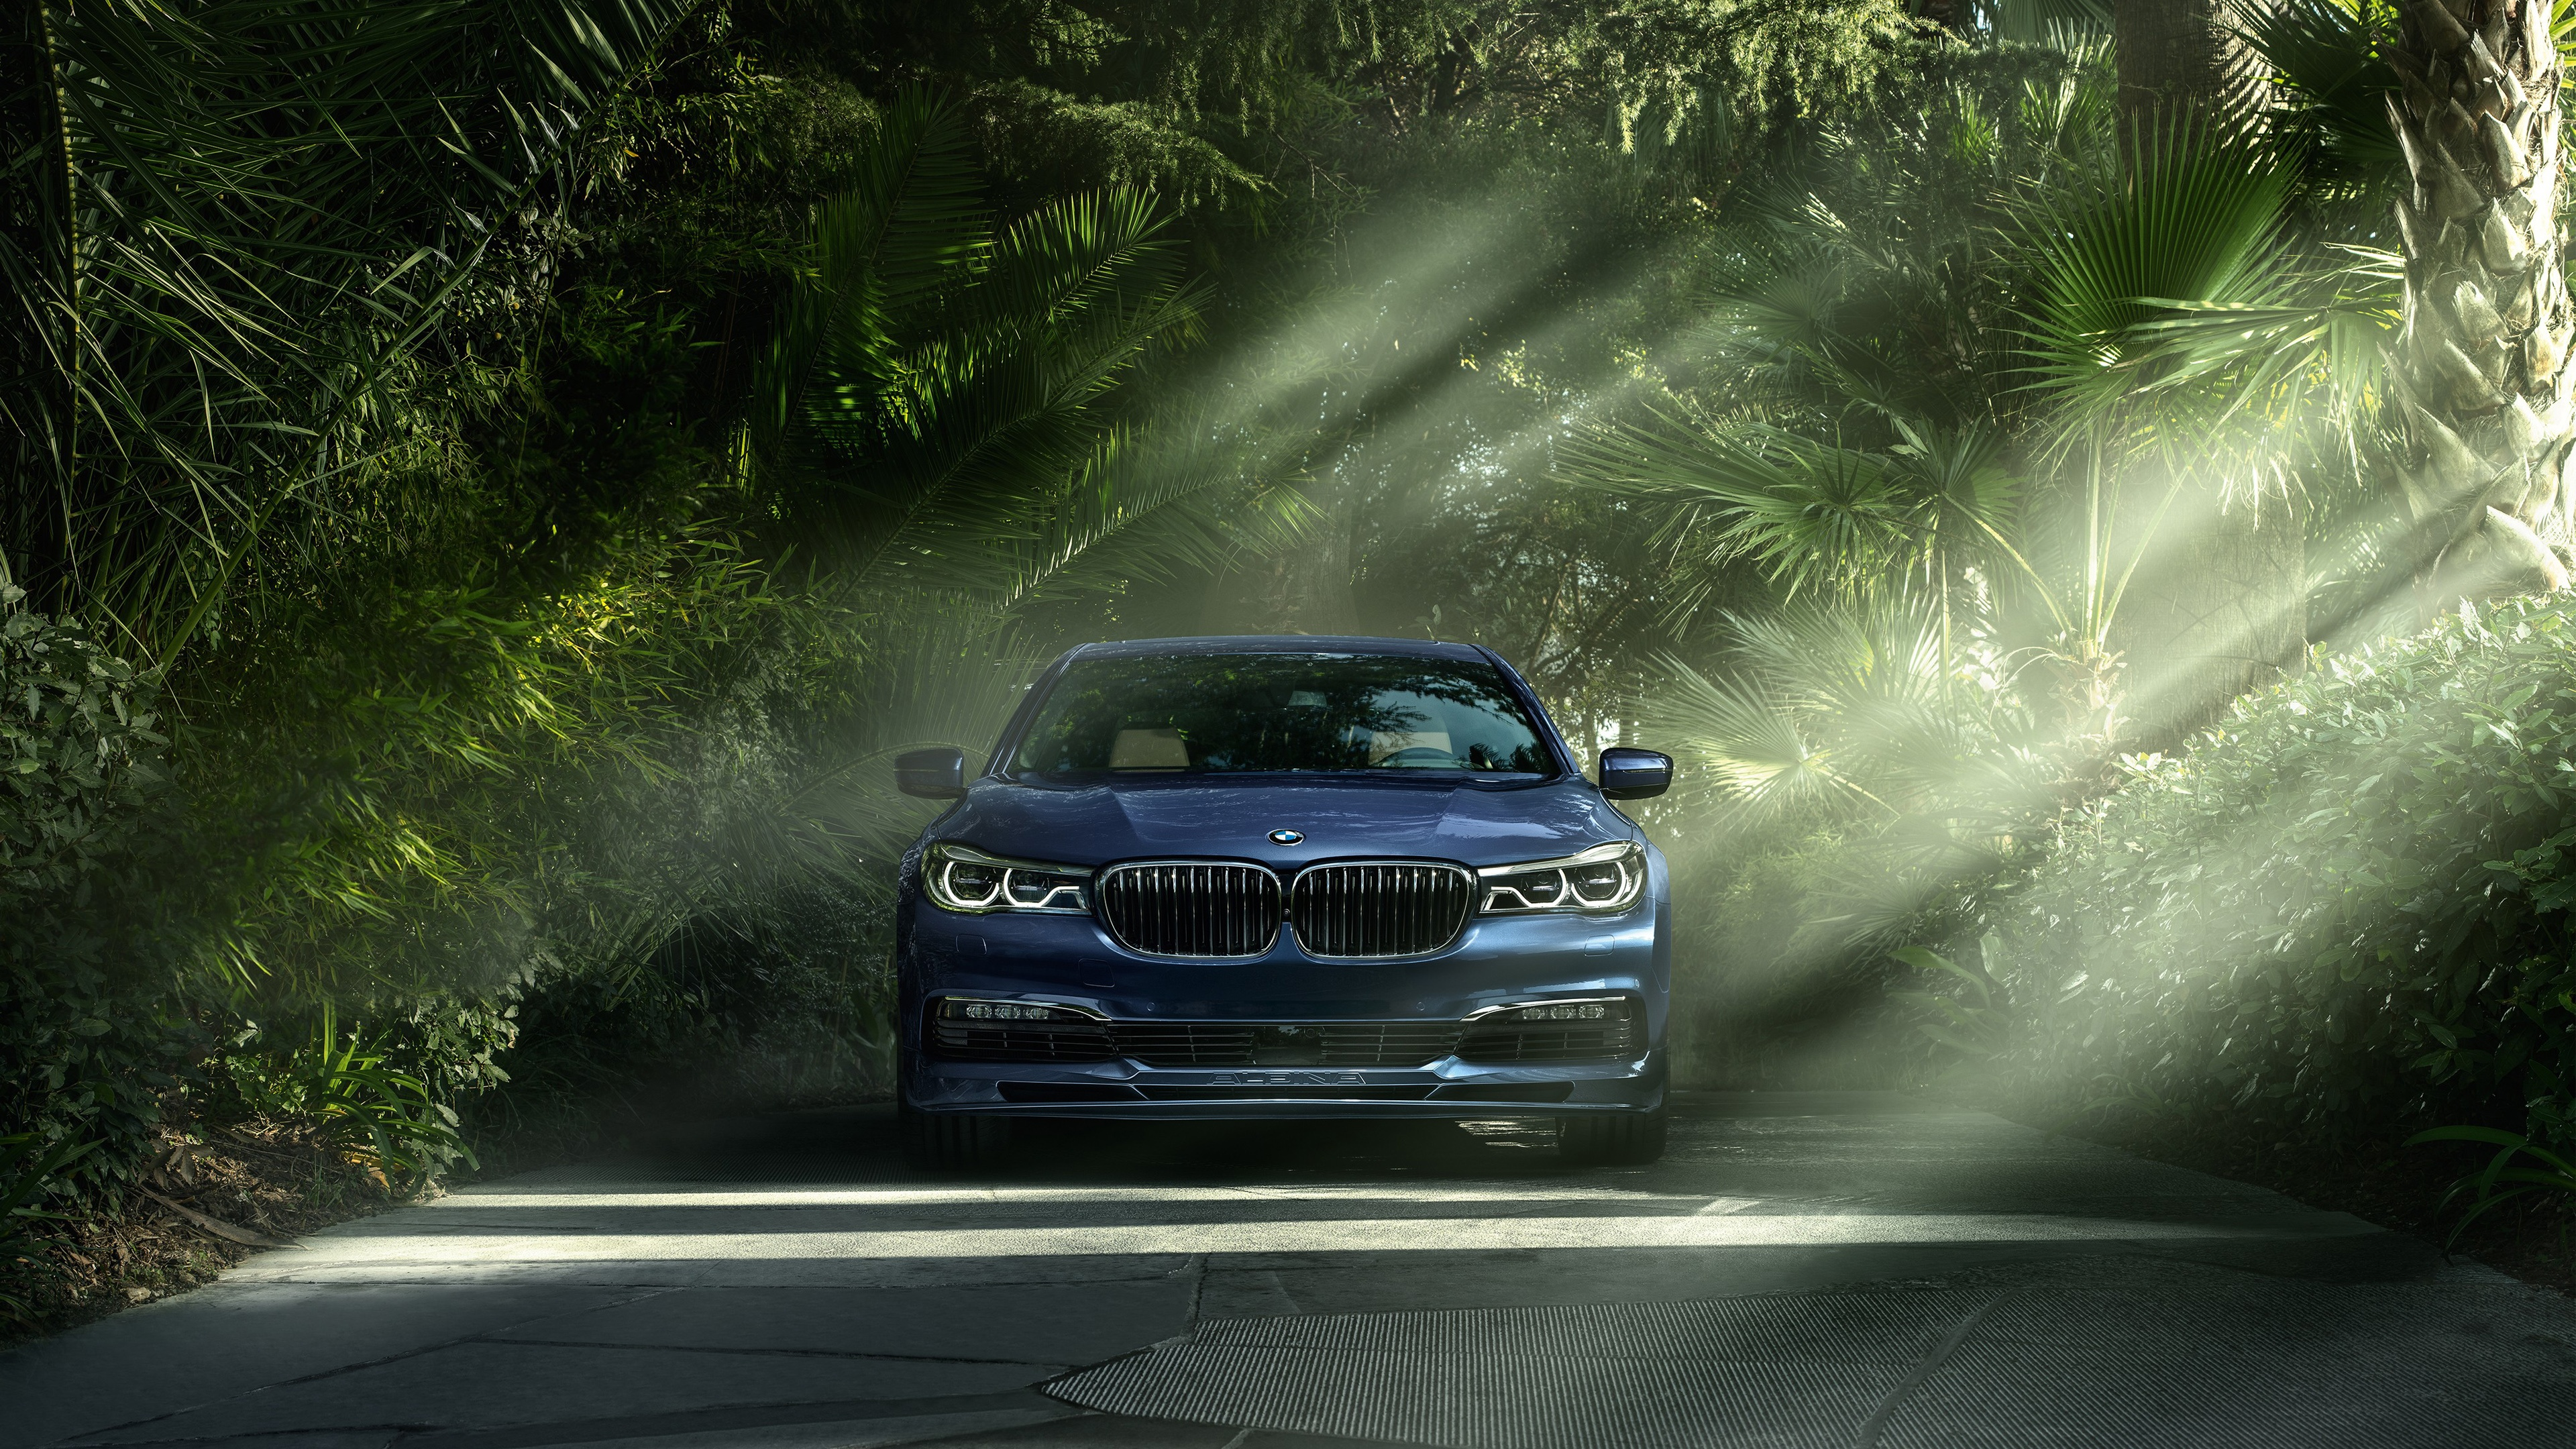 BMW Alpina B7 xDrive 2017 Wallpapers in jpg format for download 3840x2160